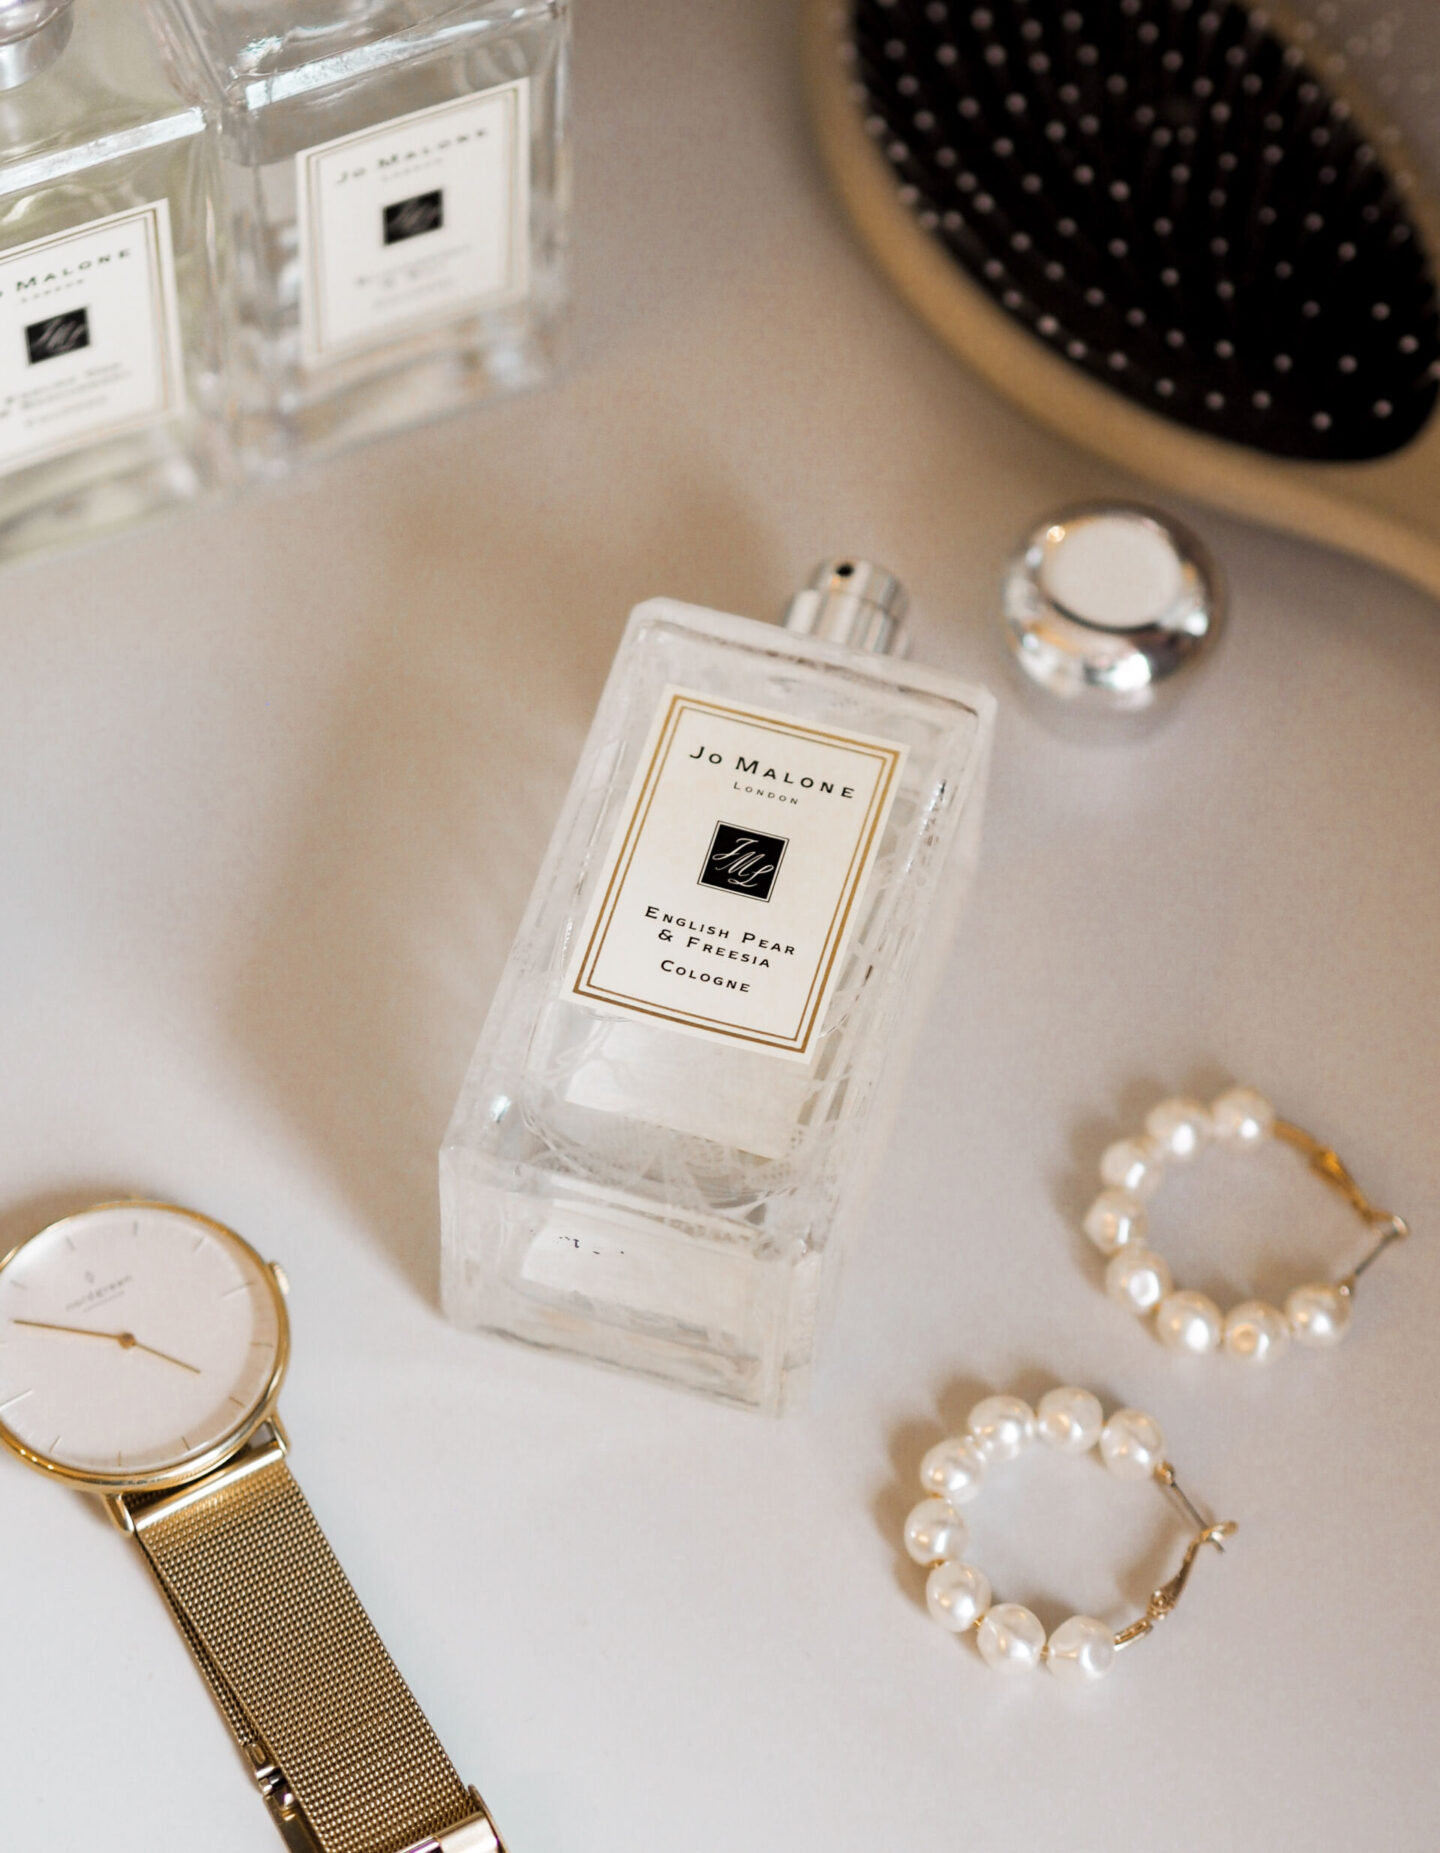 Everything You Need To Know About Jo Malone London The Best Scents Combinations To Try